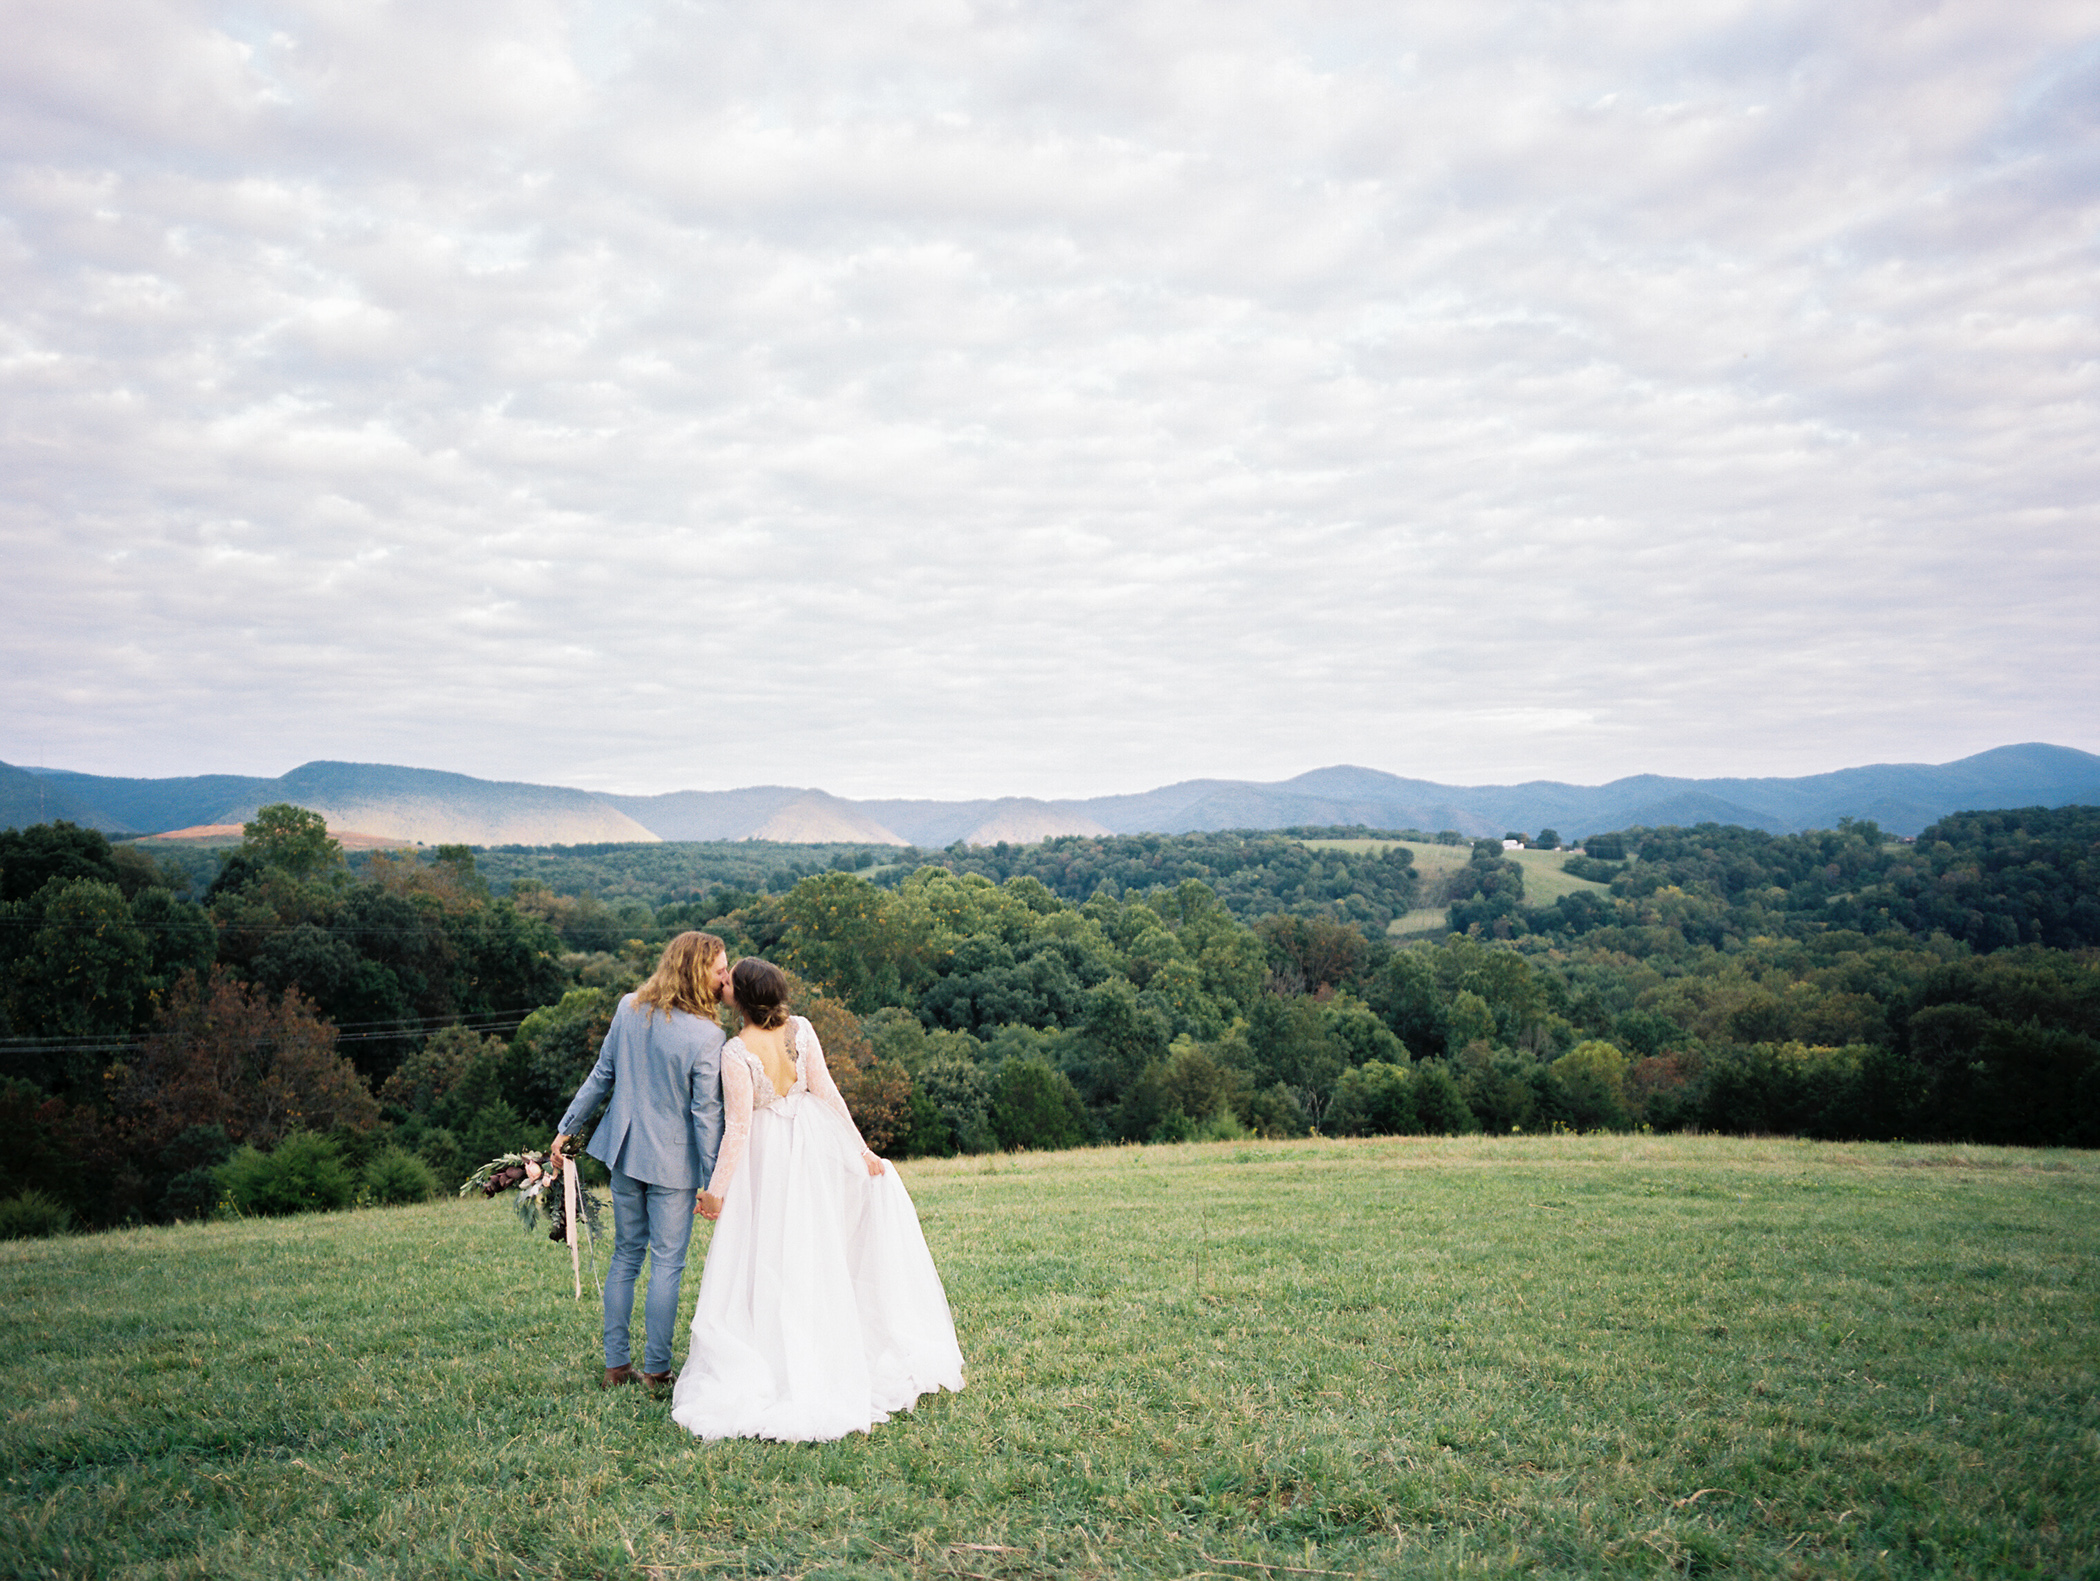 Charlotte-Film-Wedding_Photographer-heartstone-lodge-virginia-39.jpg